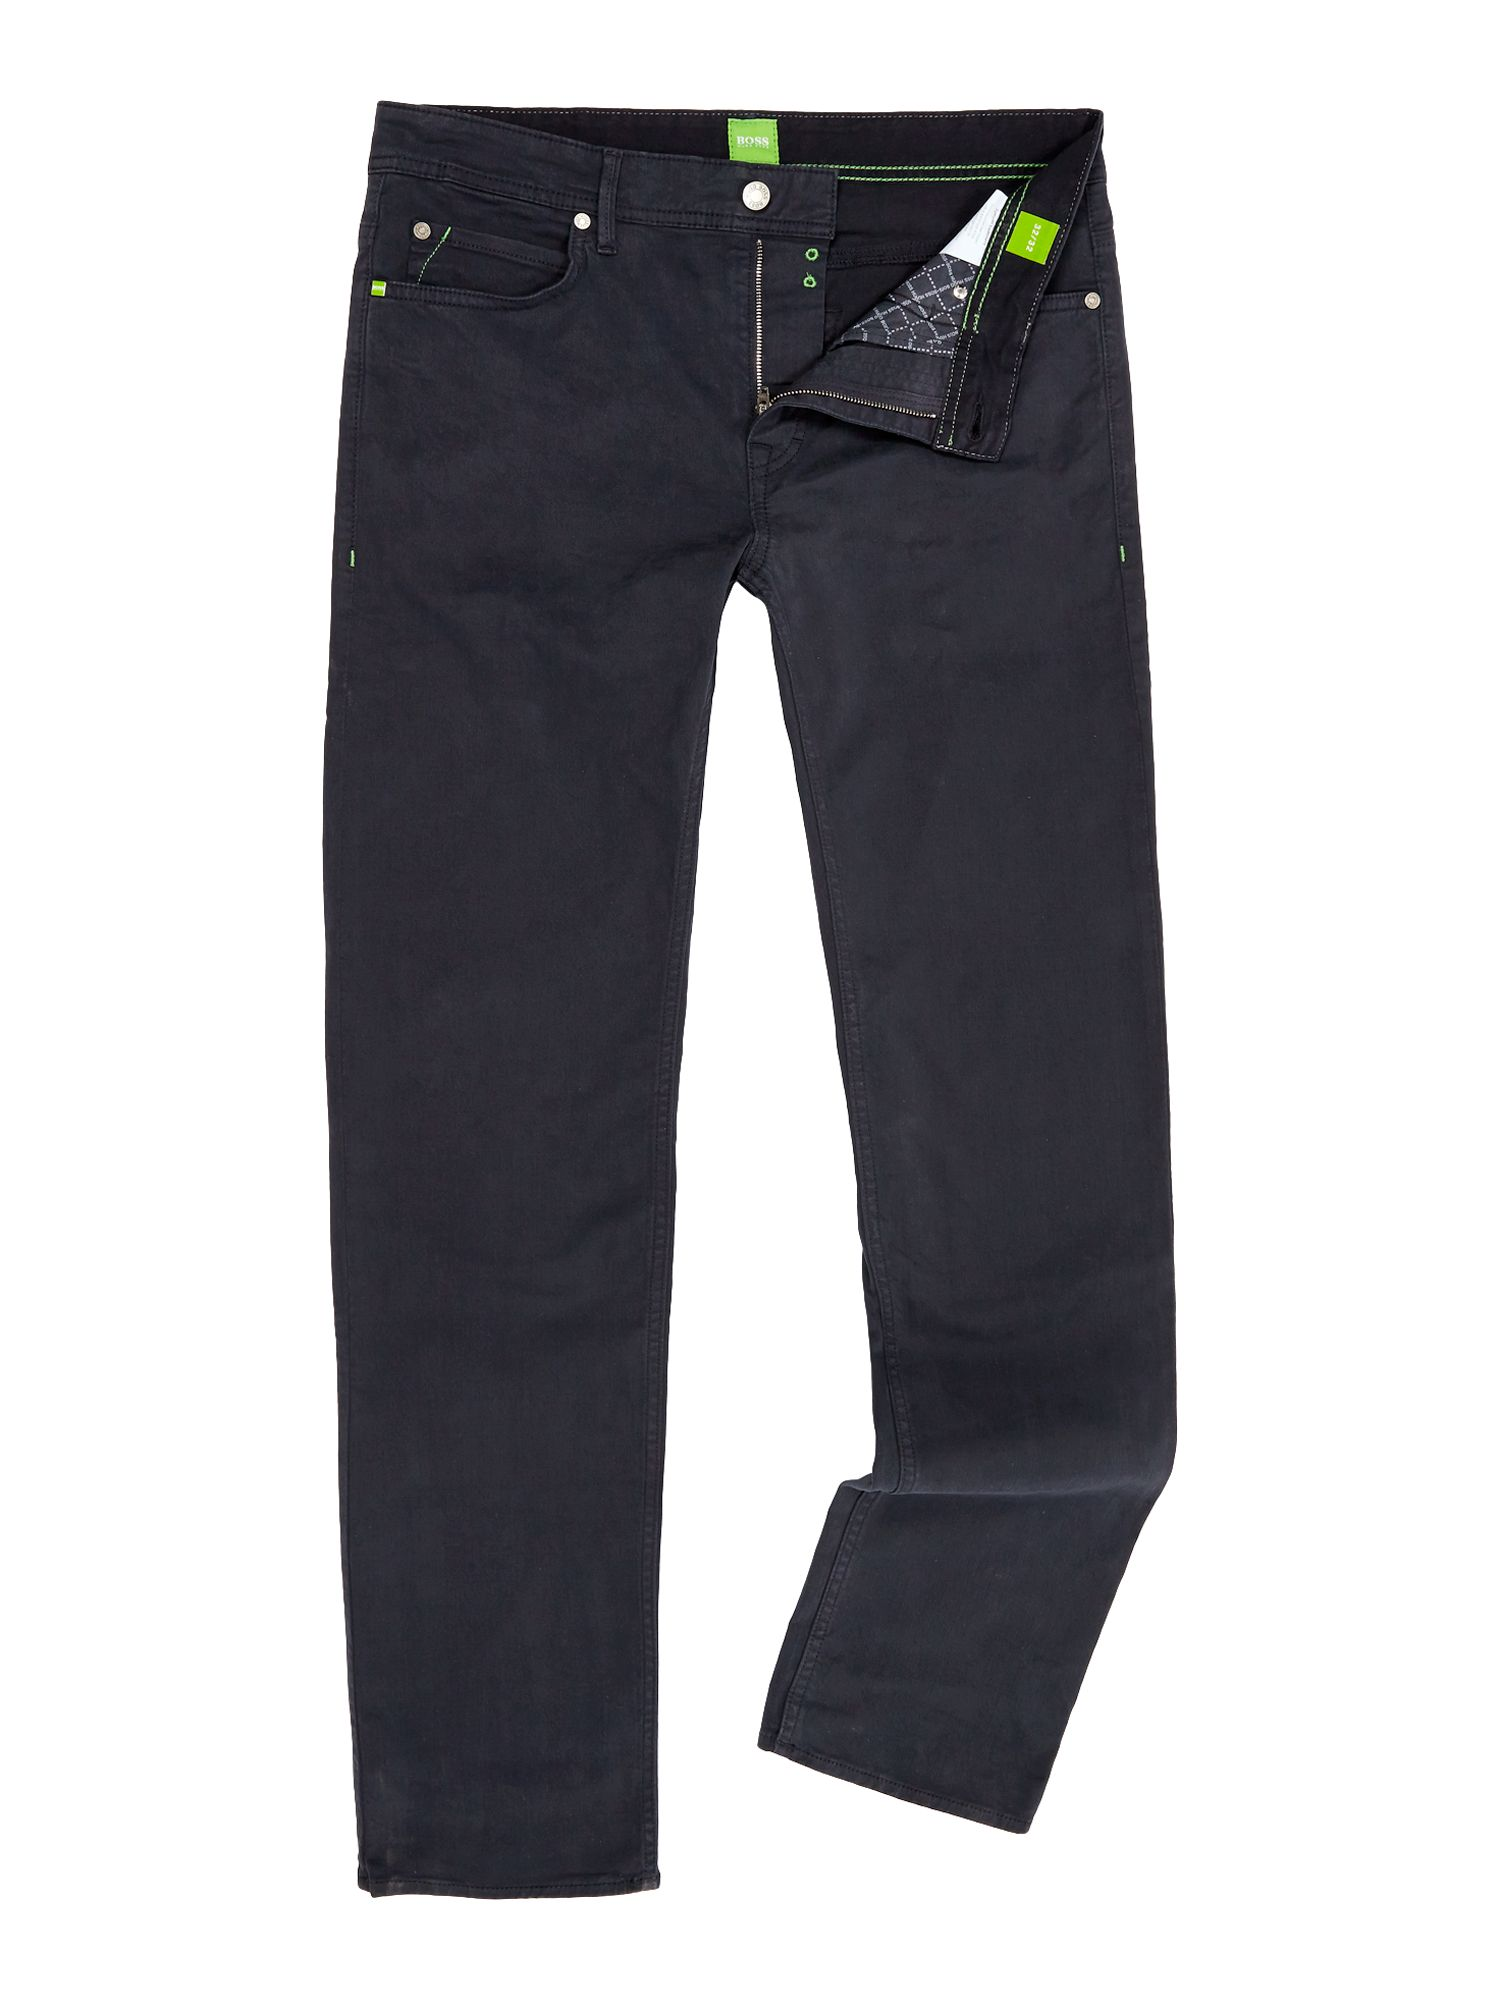 Five pocket deam 30 regular fit jean